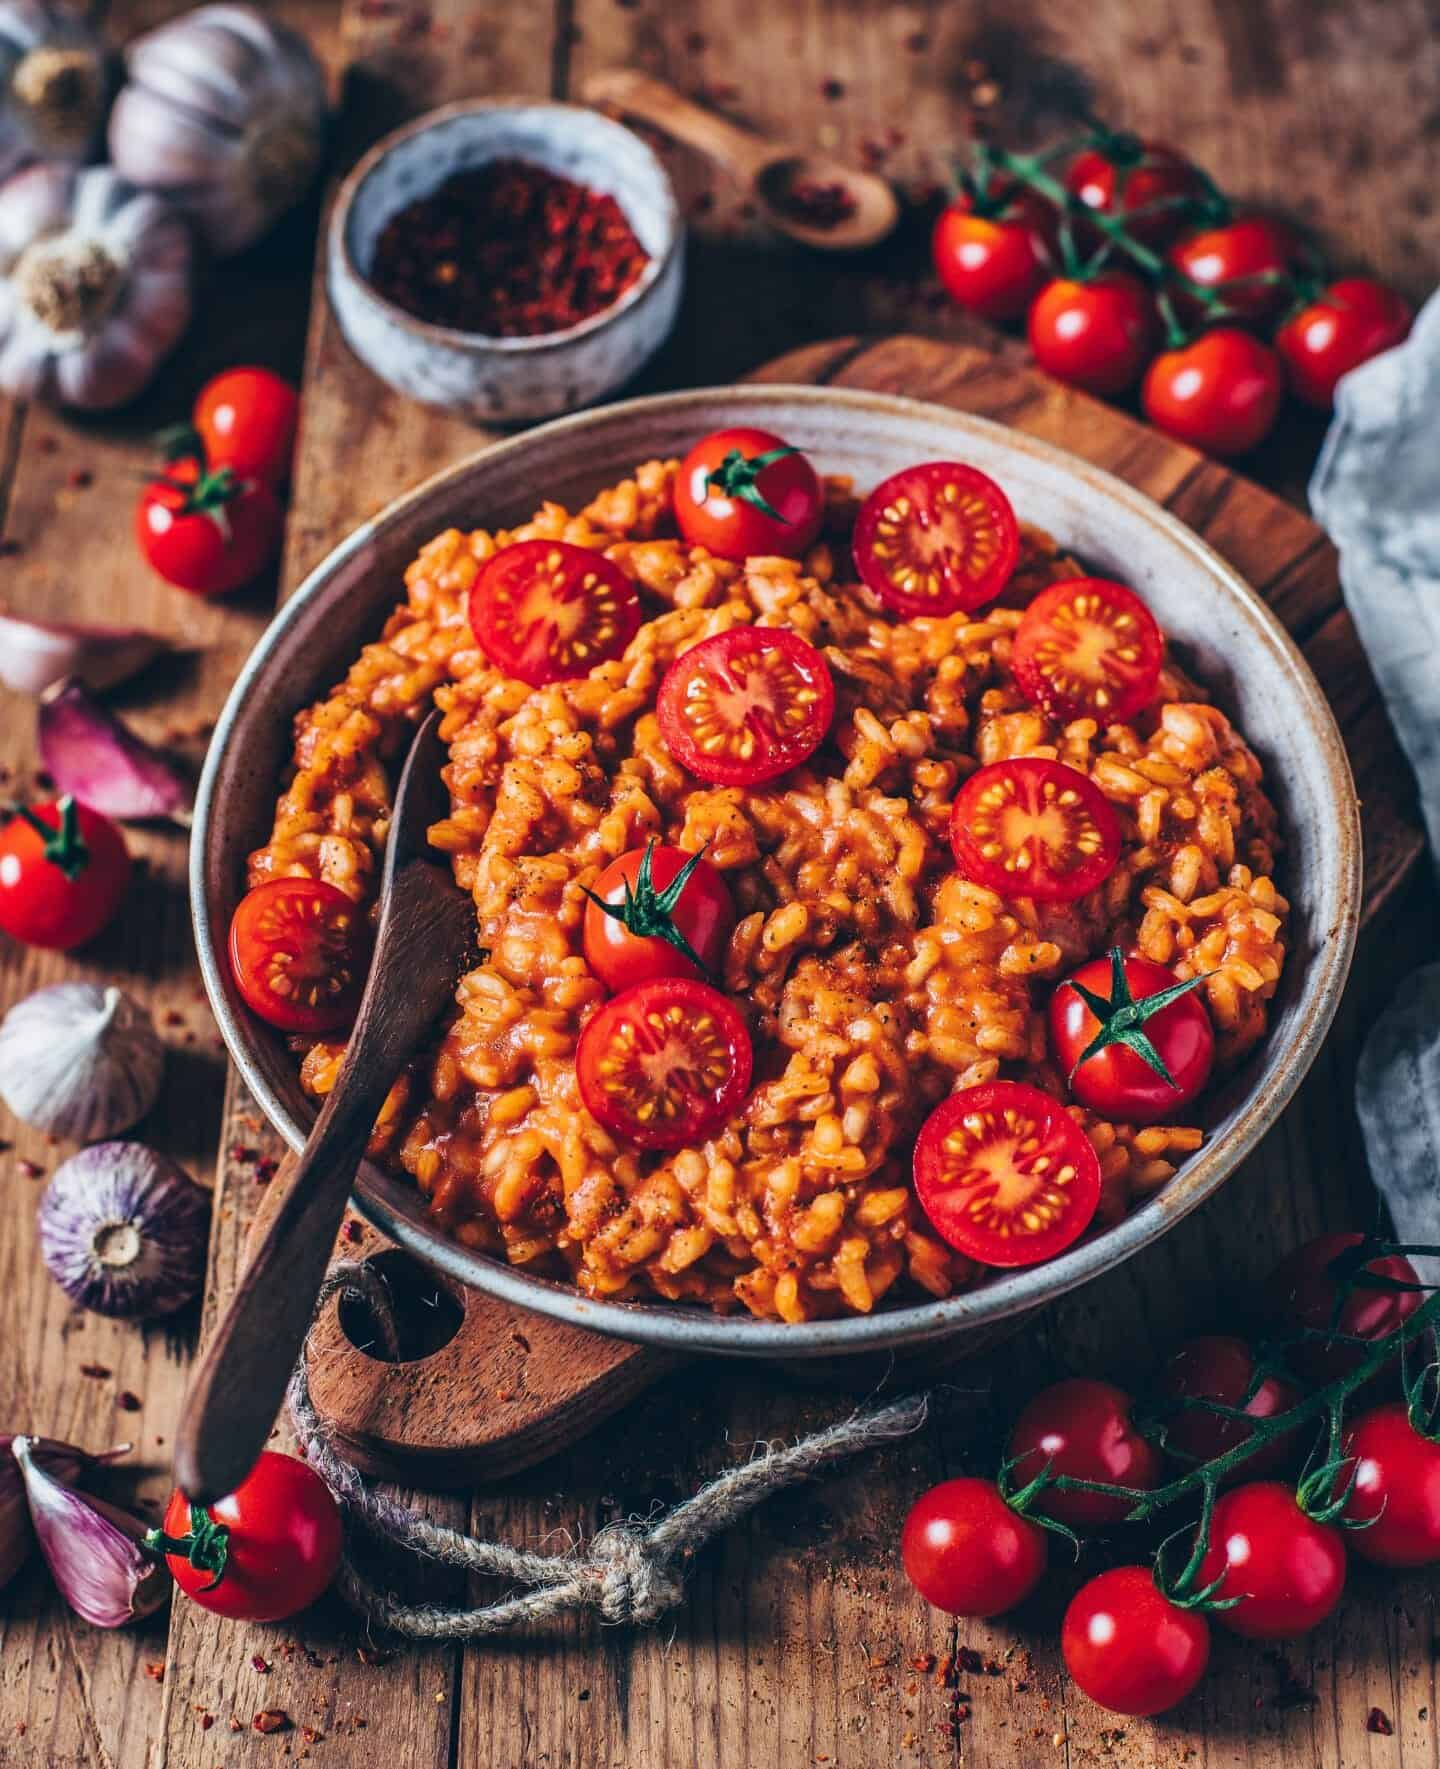 This creamy vegan tomato risotto is easy and quick to make and incredibly delicious! A perfect gluten-free & plant-based lunch or dinner.